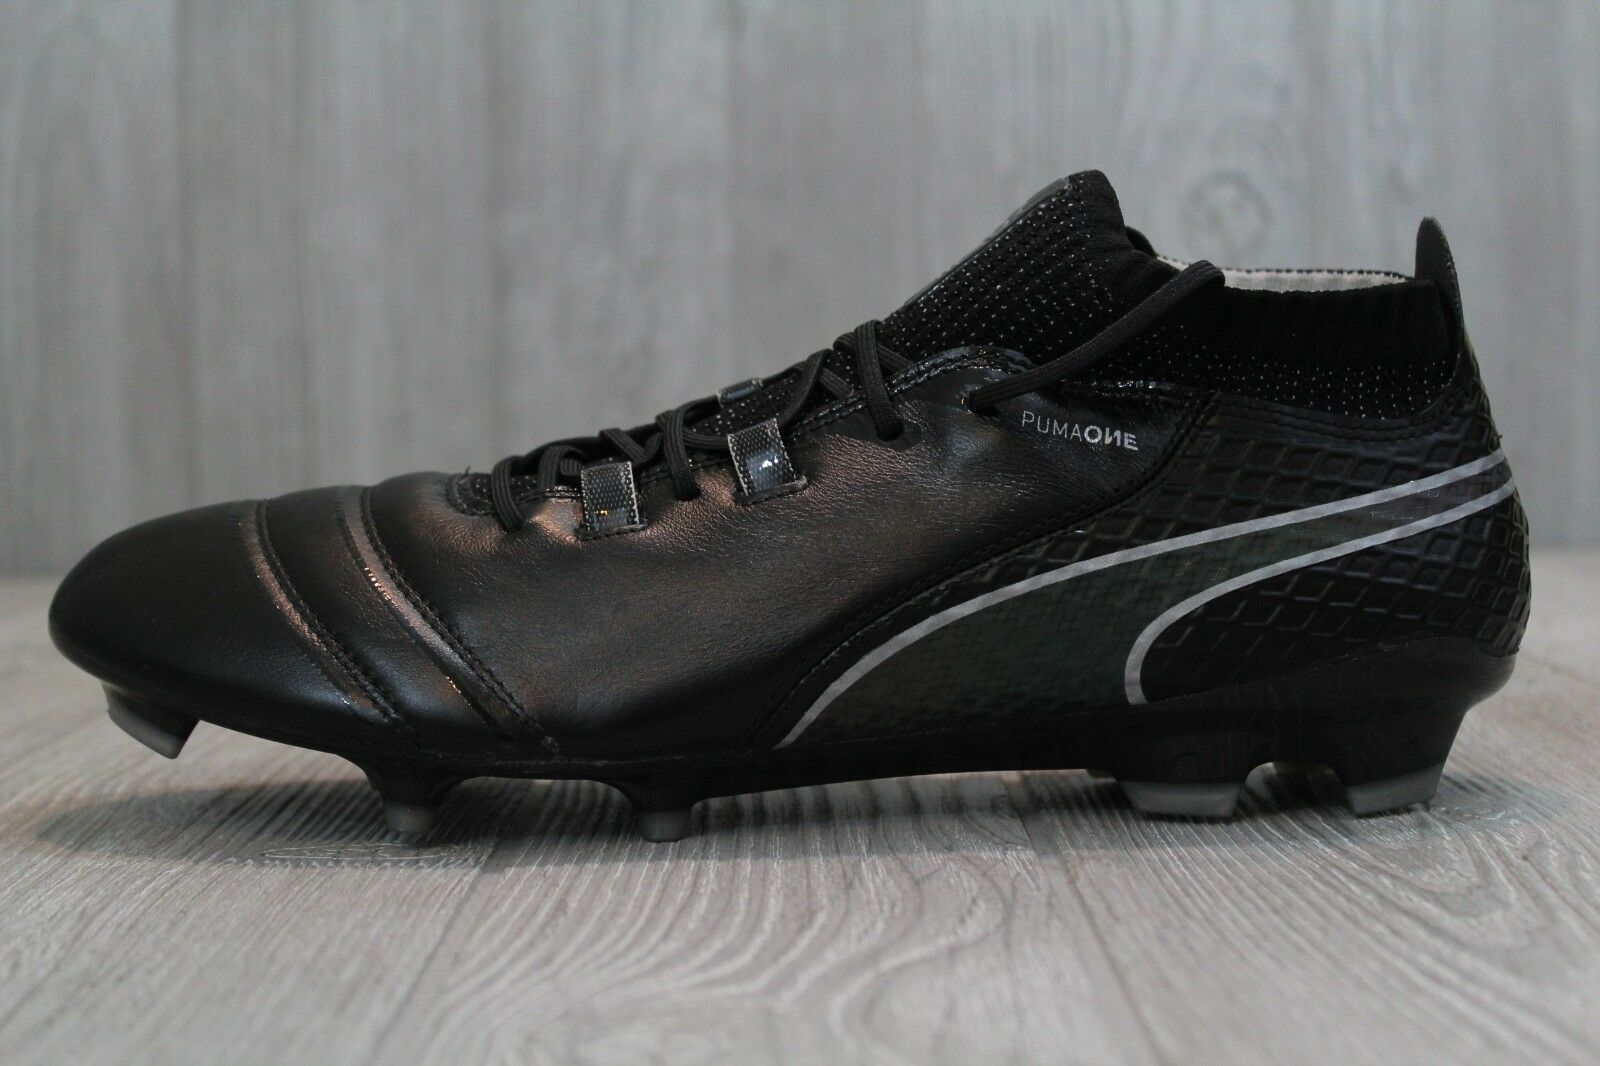 Puma One 17.1 FG Homme Football Chaussures Soccer Cleats Blanc/Noir 104062